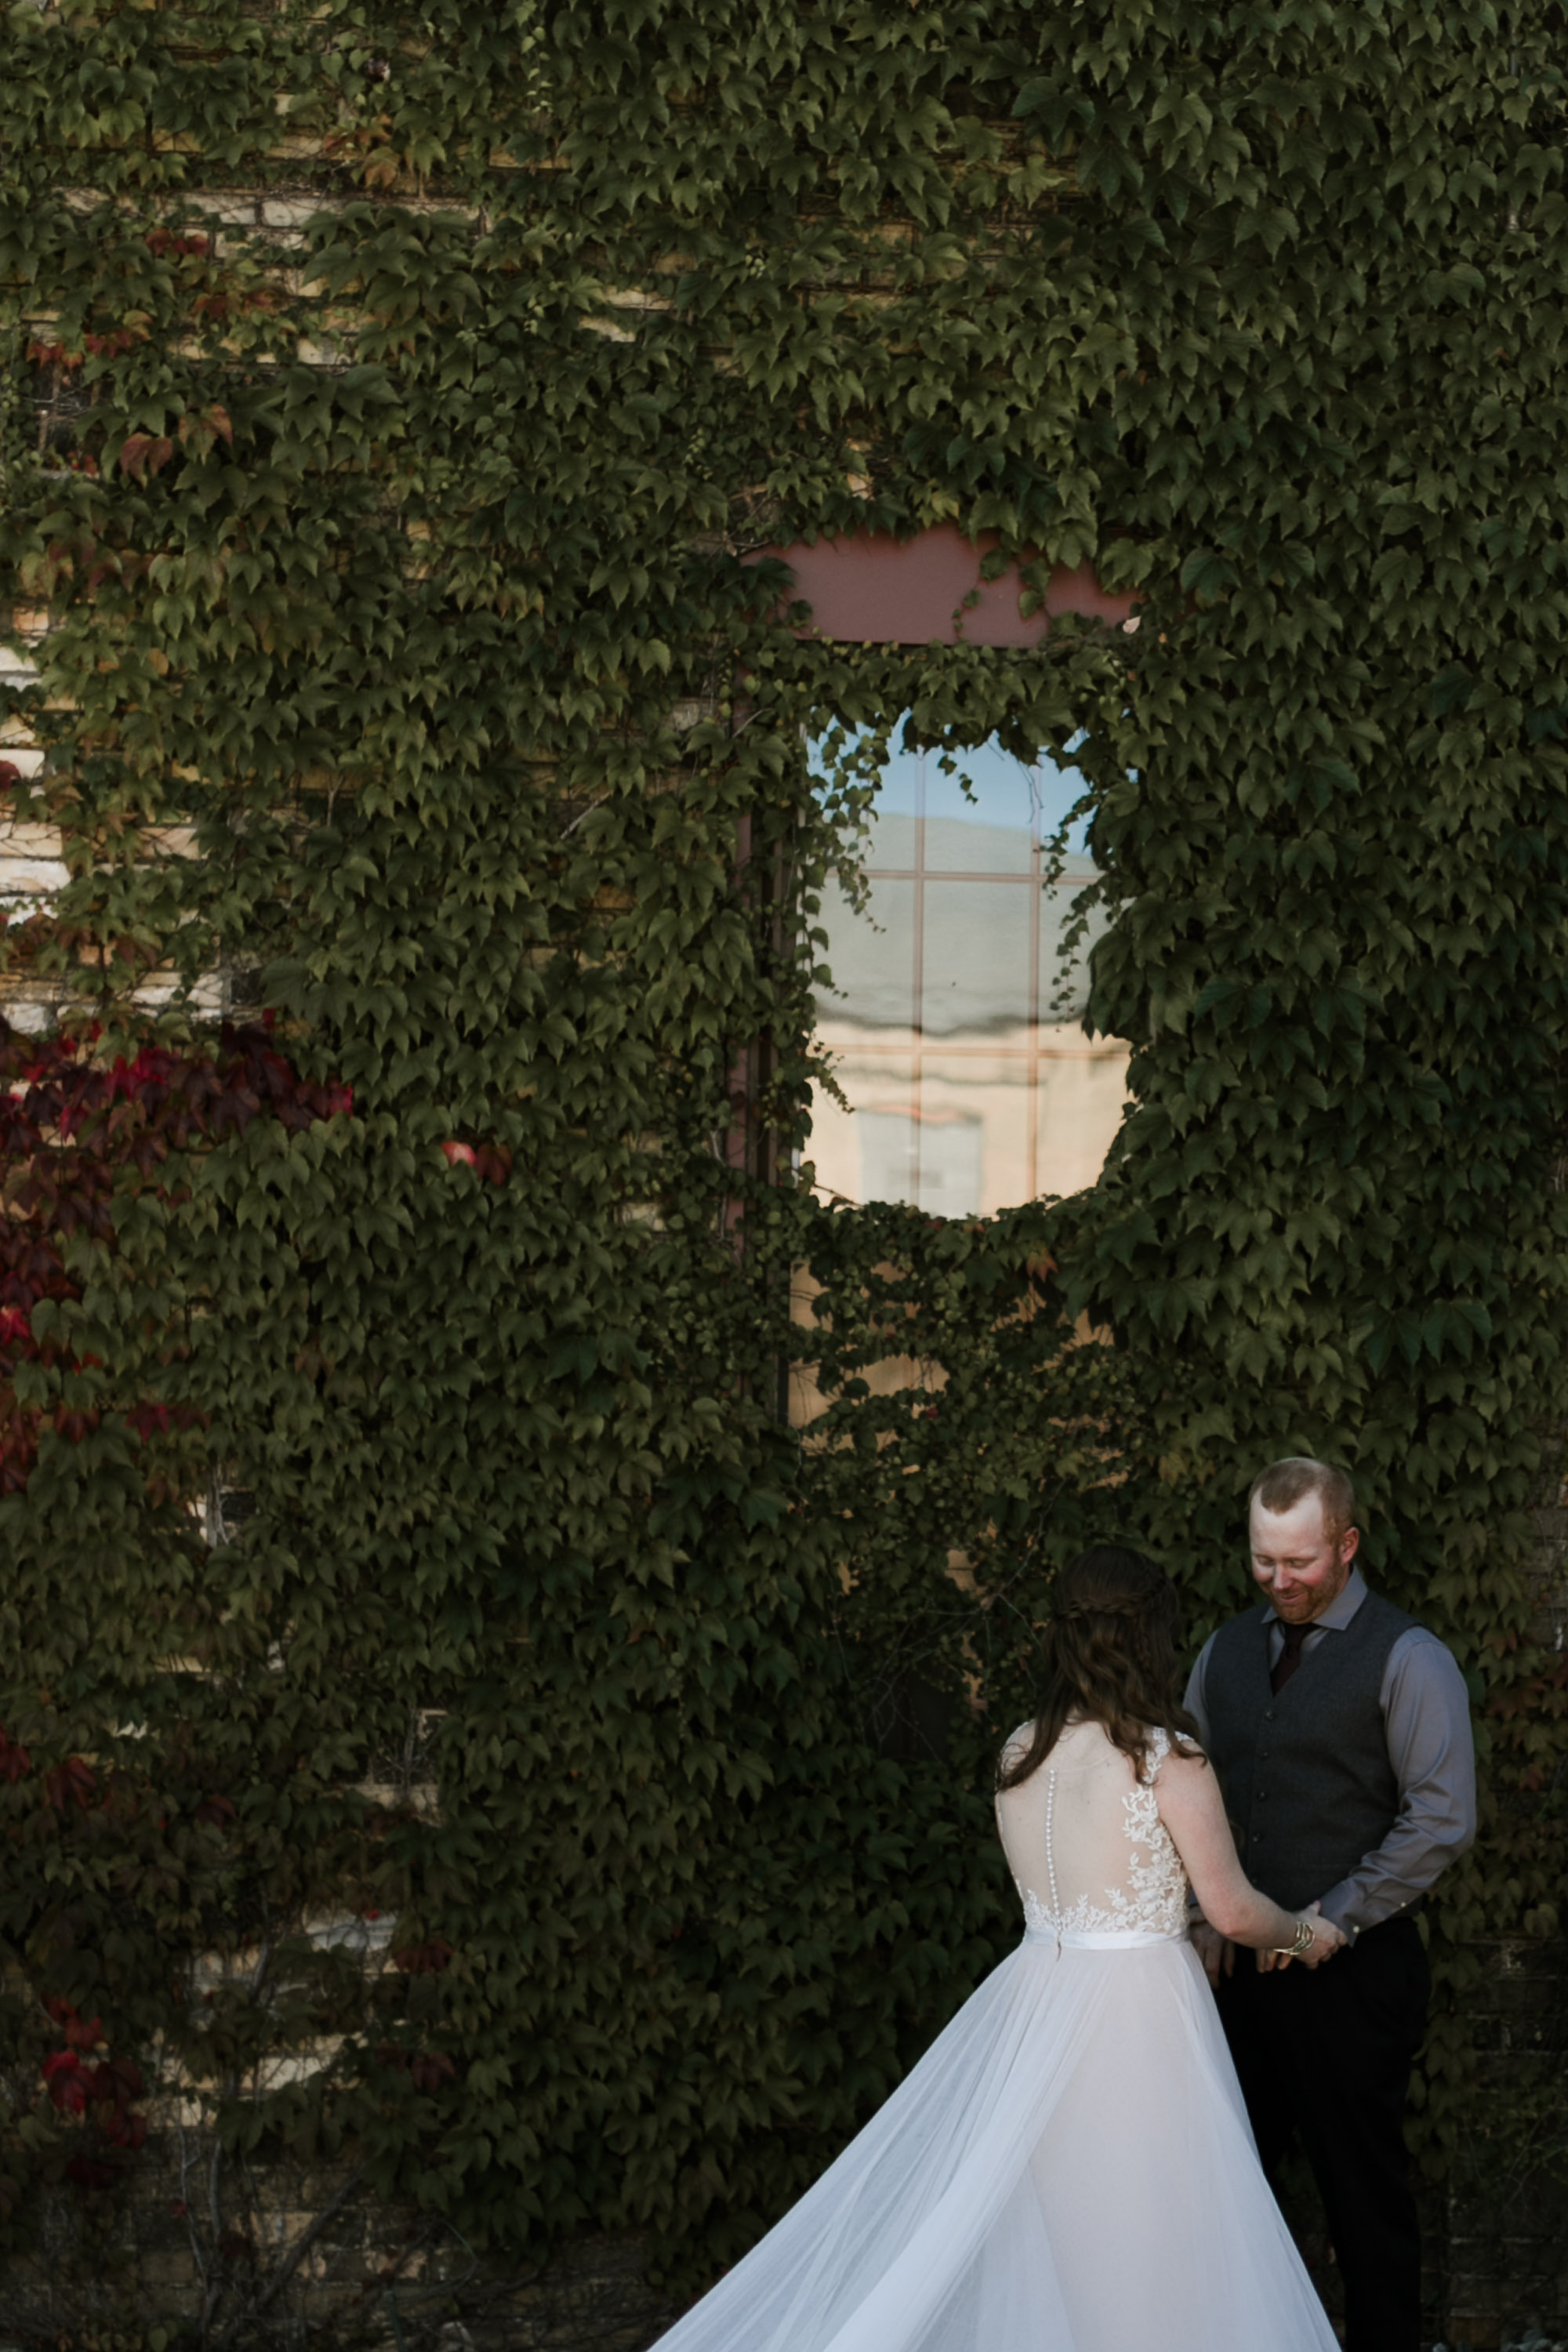 Bride and groom first look by the Ivy wall at the NP Event Space. Photography by Britt DeZeeuw, Brainerd MN wedding photographer.